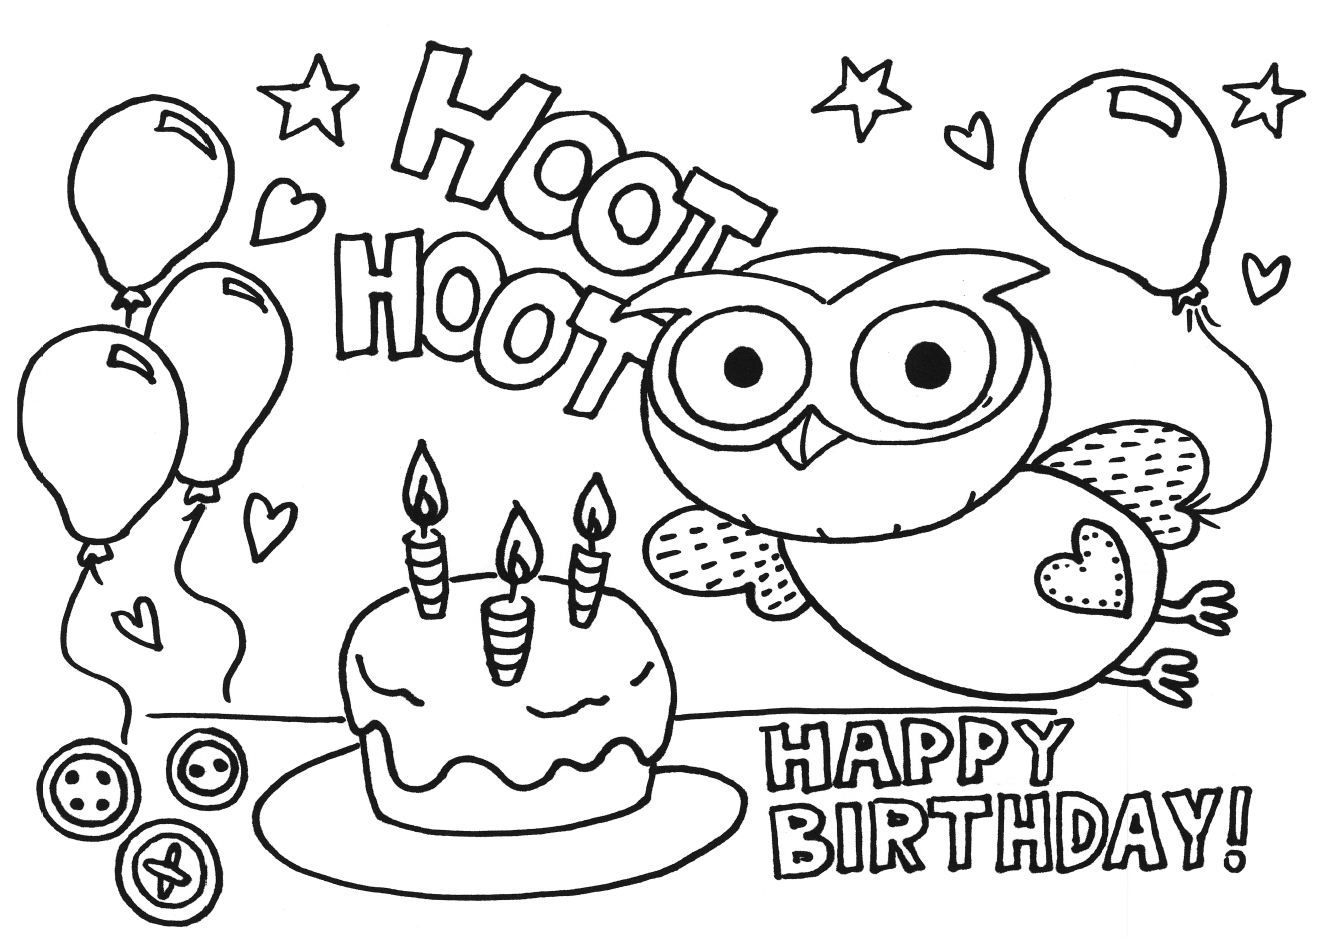 happy birthday coloring pages | Only Coloring Pages